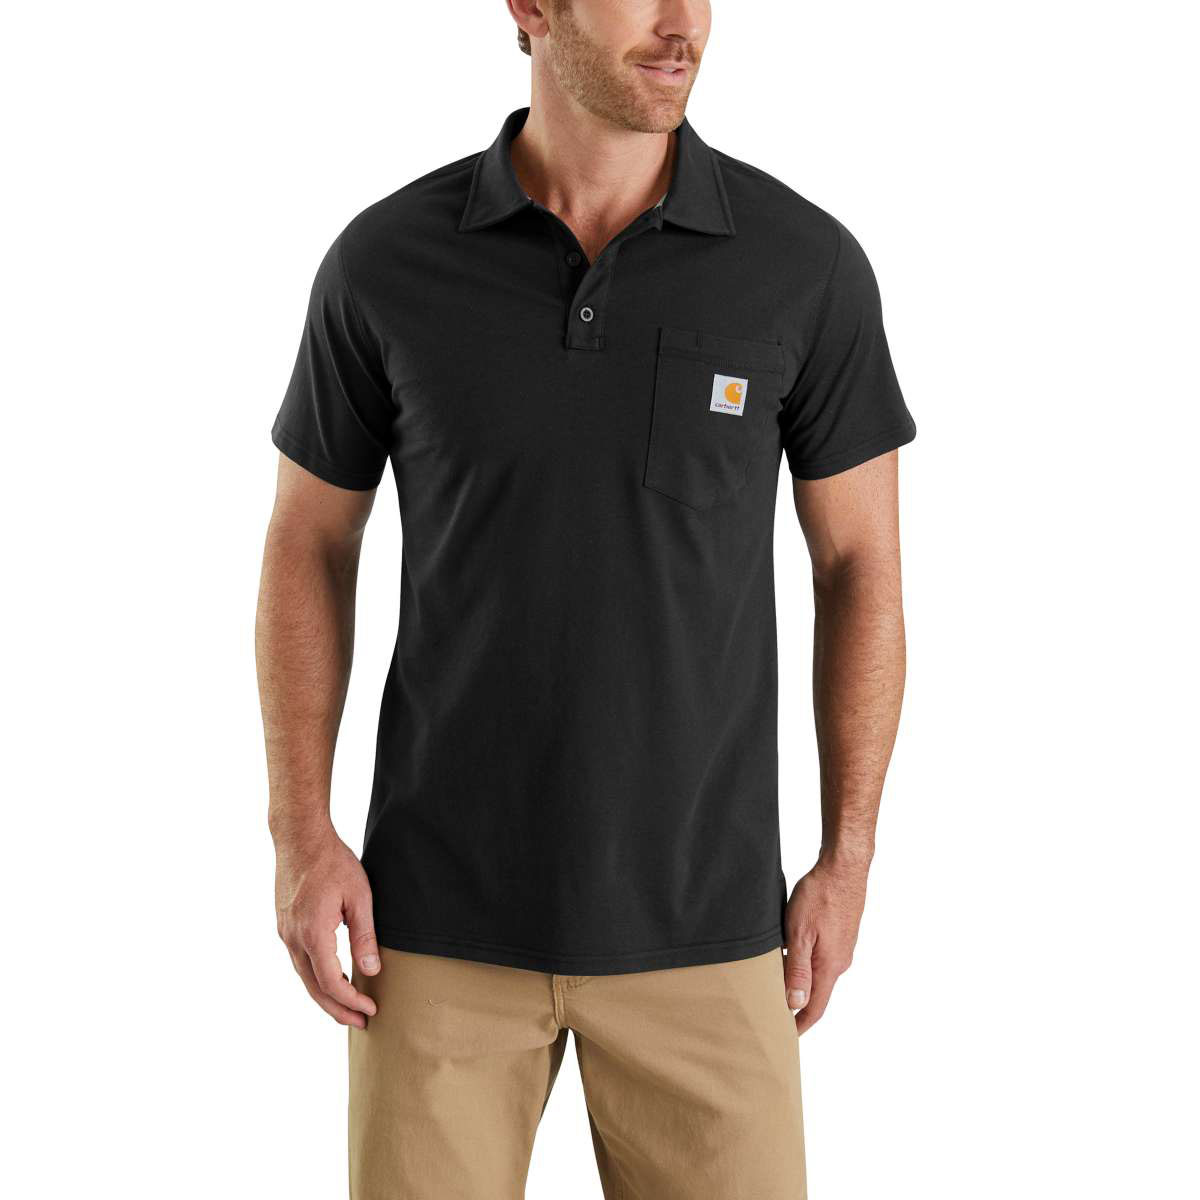 Carhartt Force Cotton Polo with Pocket